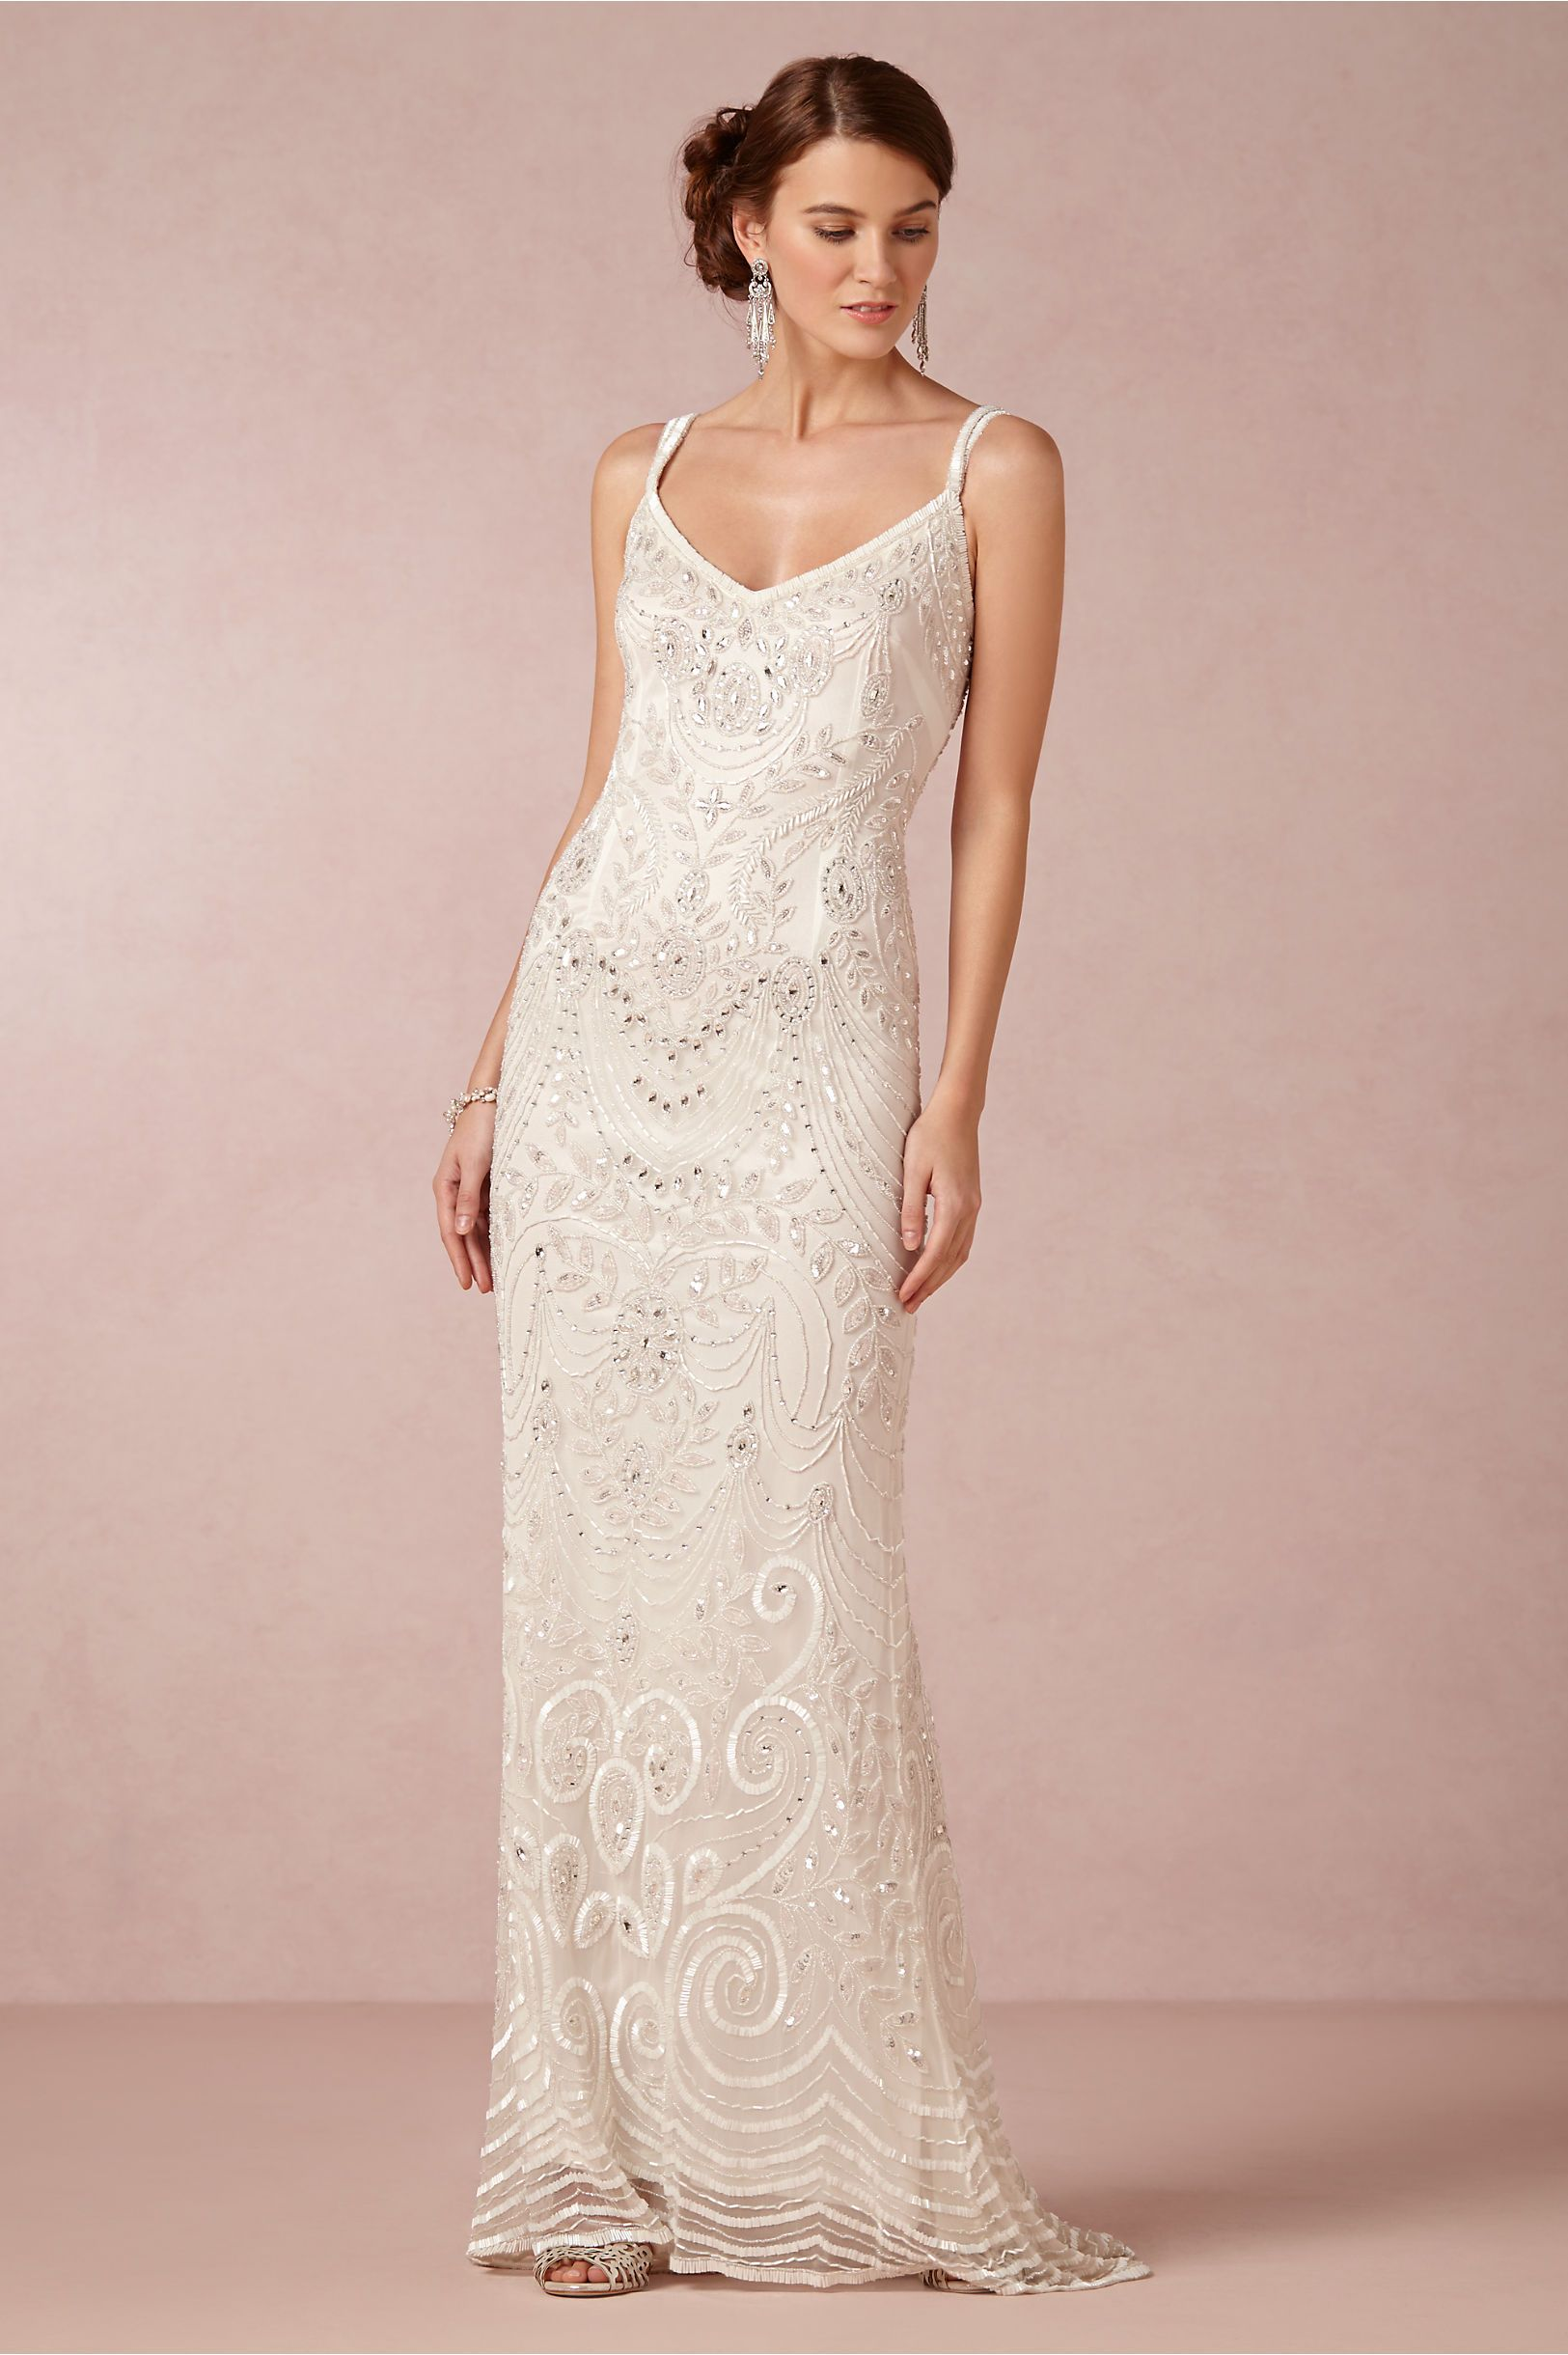 BHLDN Theia Elsa Size 12 Wedding Dress | Vestidos para novia, De ...